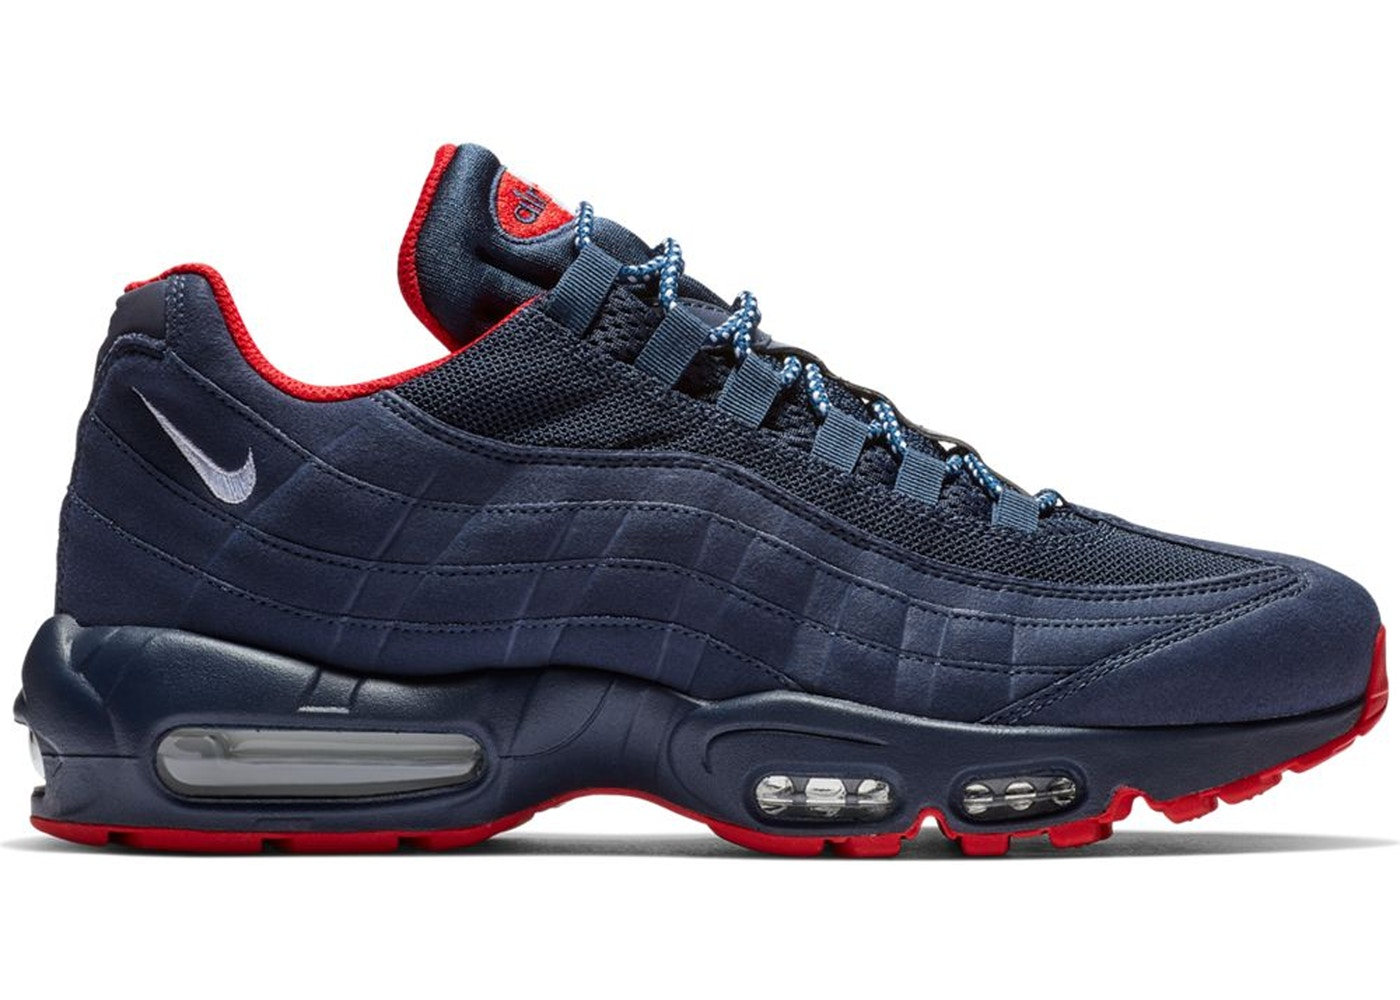 brand new 7843f 5da3b Air Max 95 Midnight Navy University Red - BV1255-400